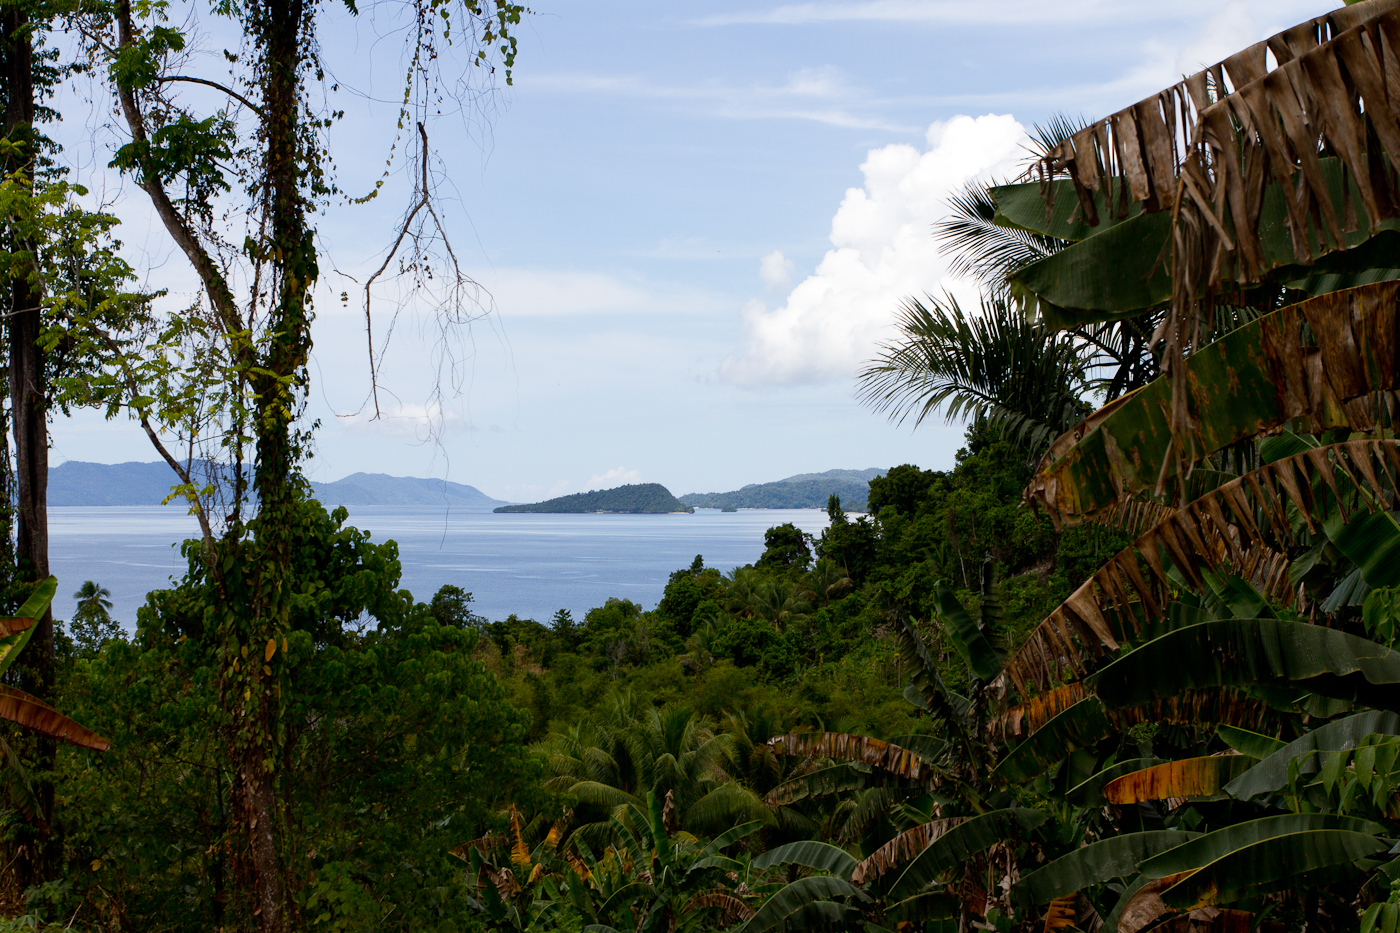 View over the bay towards Sapokren on Waigeo Island.